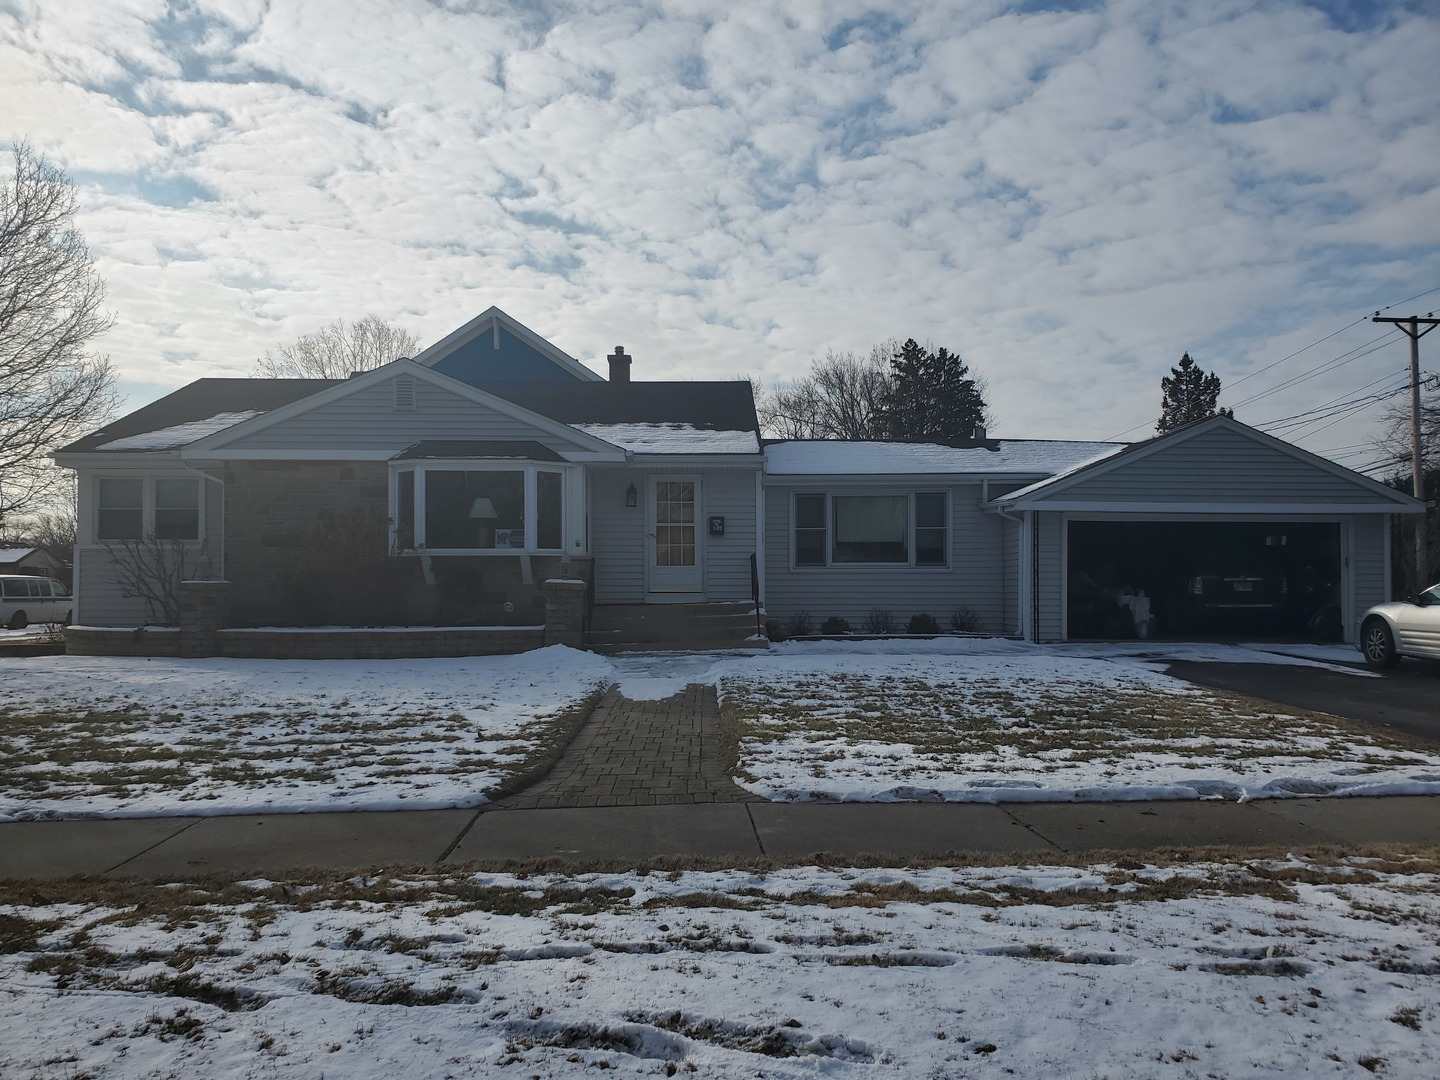 1402 South 5th Avenue, Des Plaines in Cook County, IL 60018 Home for Sale